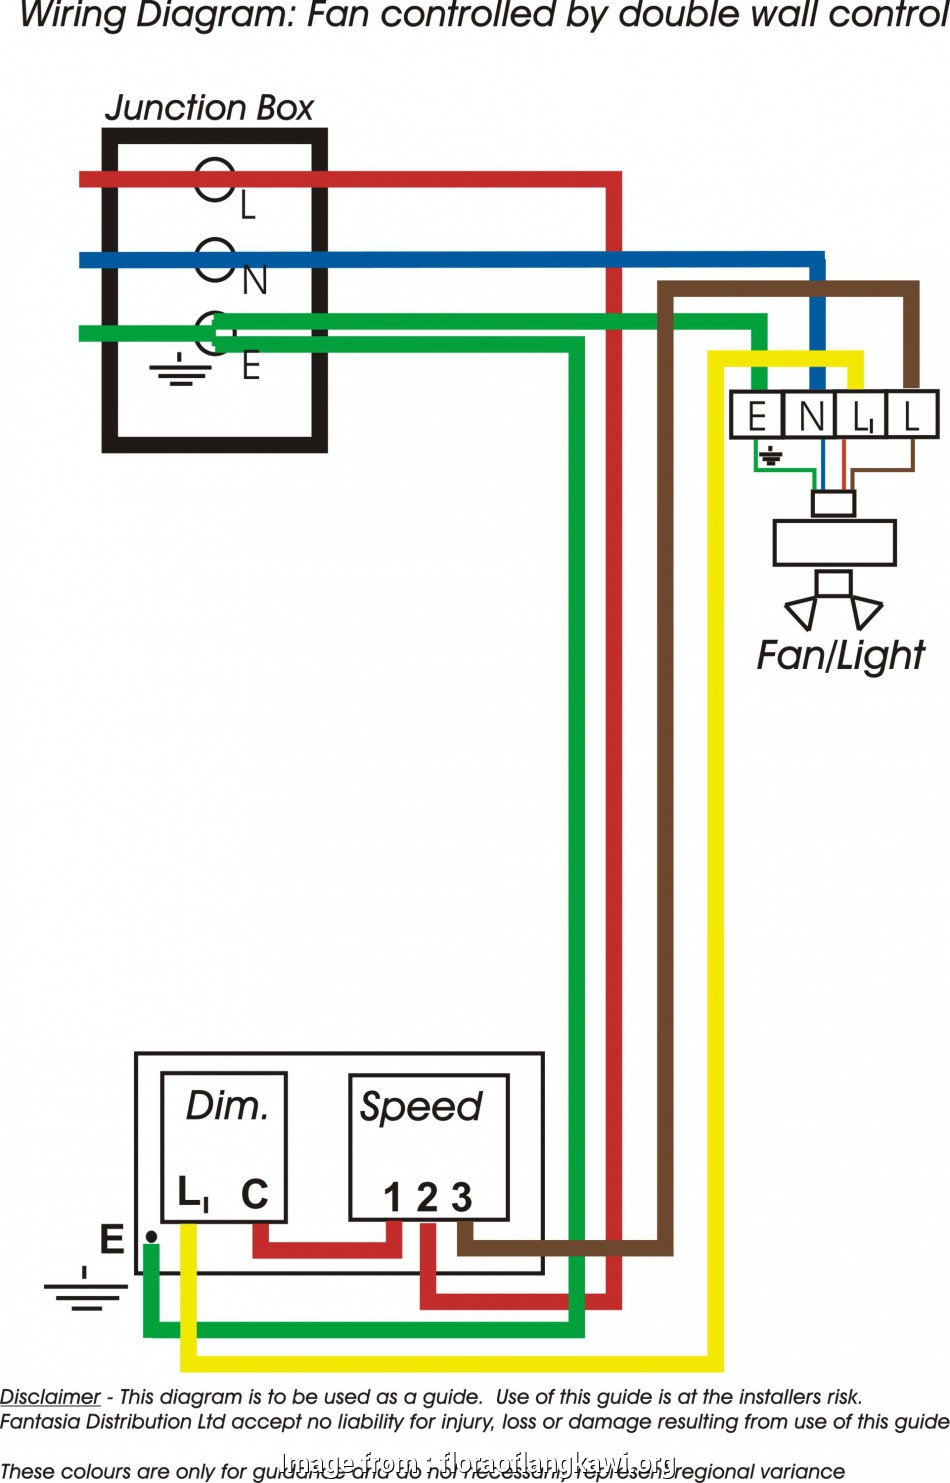 wiring a switch to a fan Ceiling, Wall Switch Wiring Diagram In 3 Speed With 4 Wires Beautiful Wire, Control, Ceiling, Speed Control Switch Wi 20 New Wiring A Switch To A Fan Collections